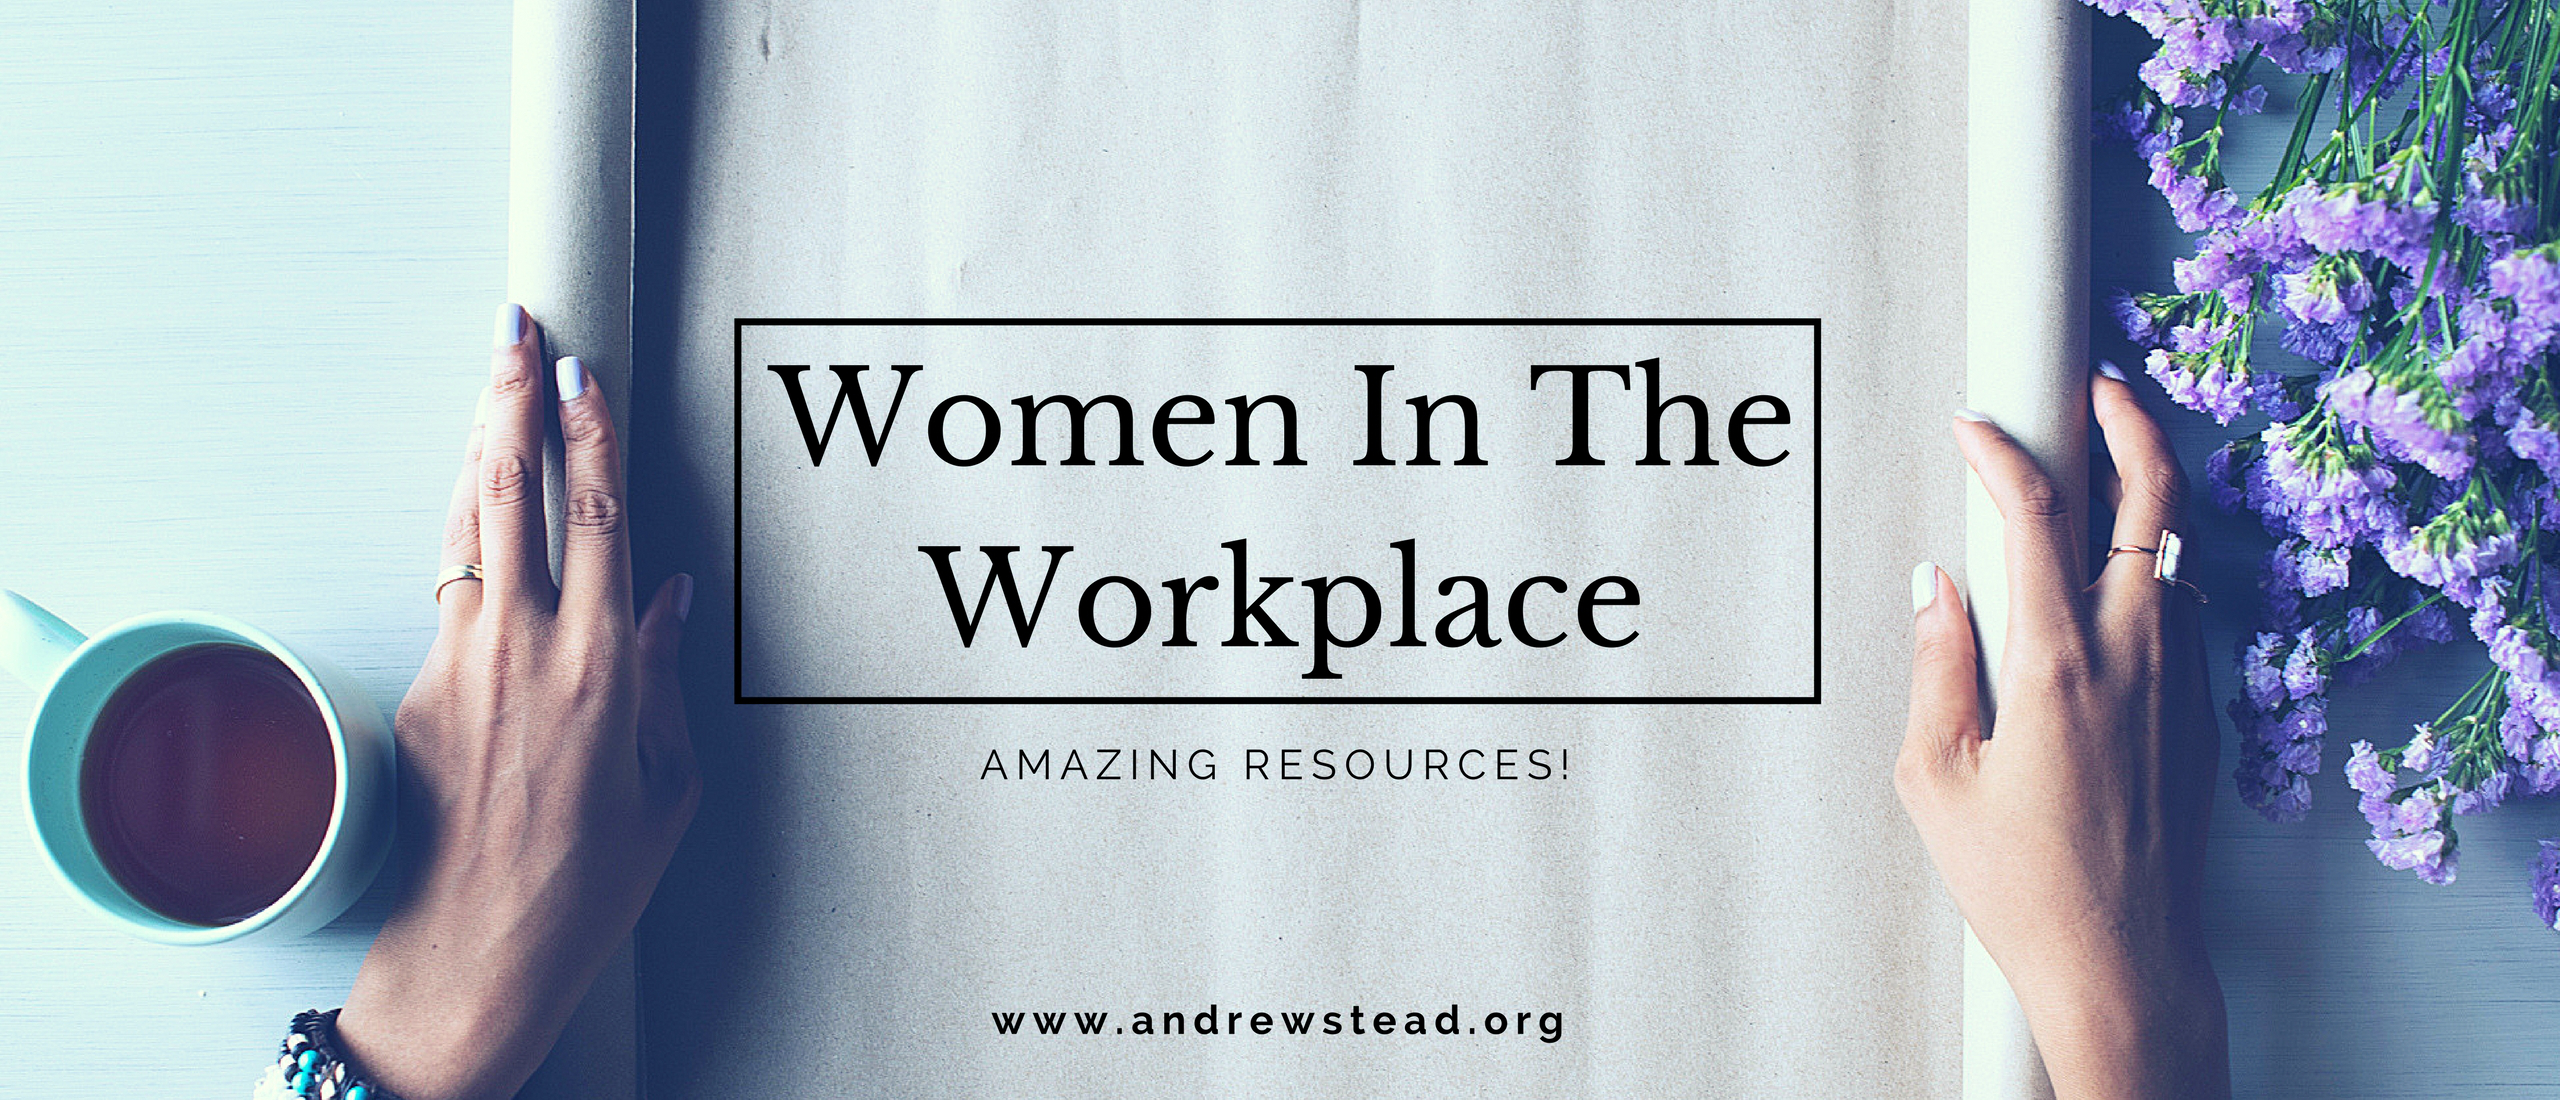 Women-in-the-workplace - Andrew-Stead-Leadership-Transformations